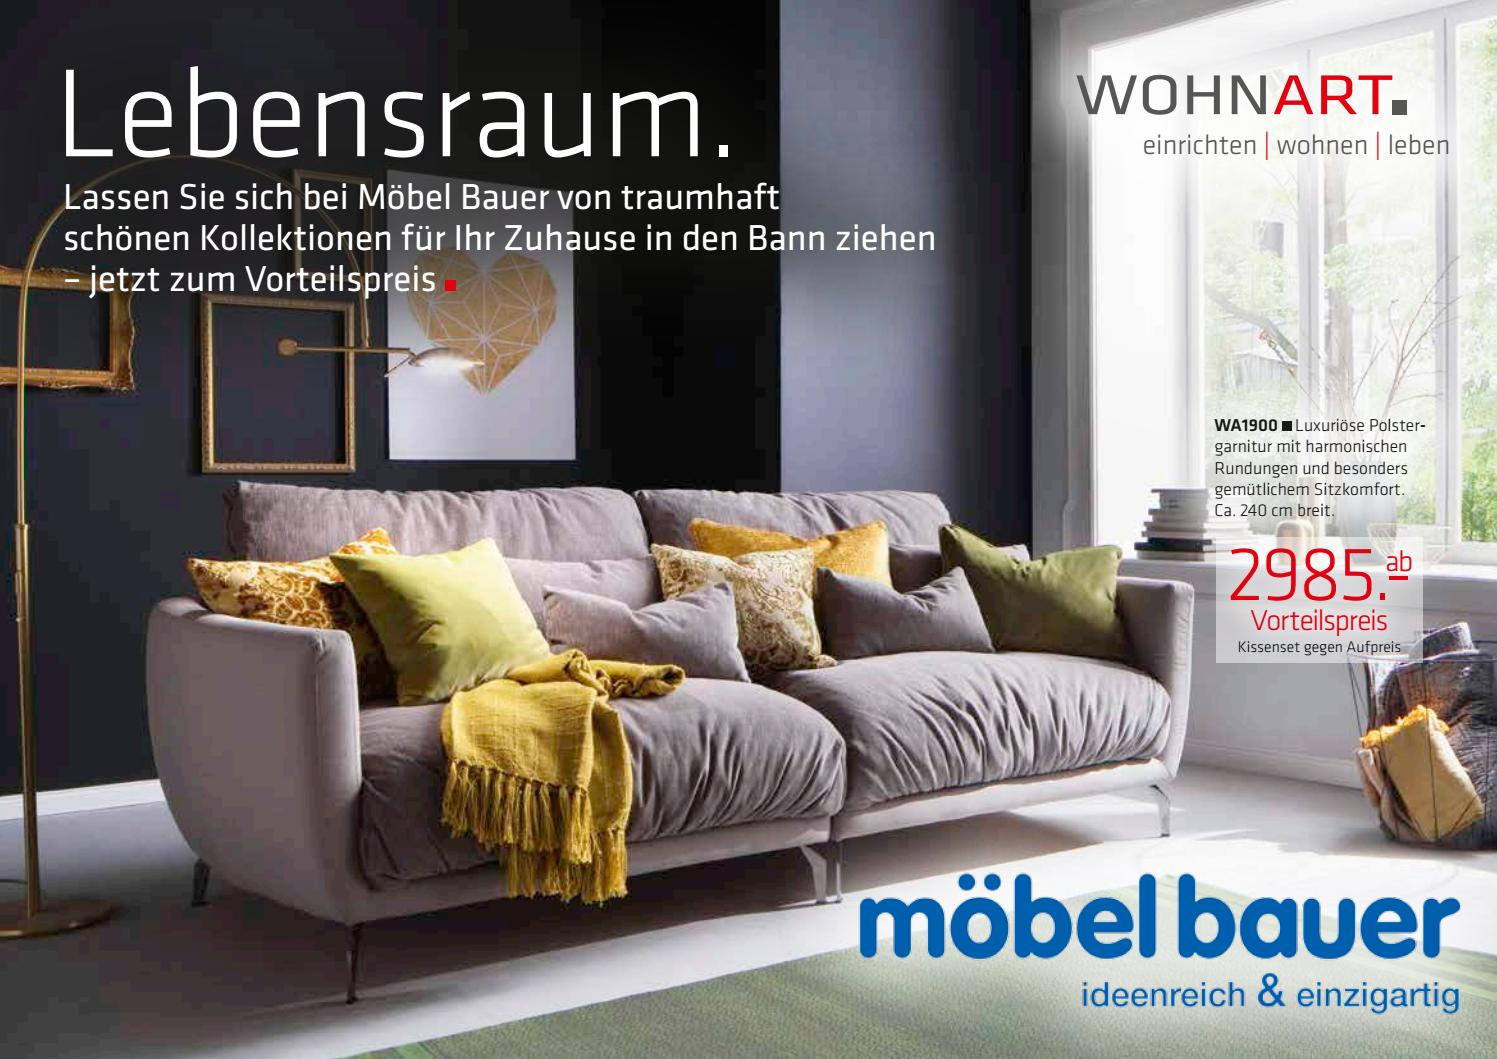 m bel bauer wohnart katalog 2016 by m7 markenpflege issuu. Black Bedroom Furniture Sets. Home Design Ideas